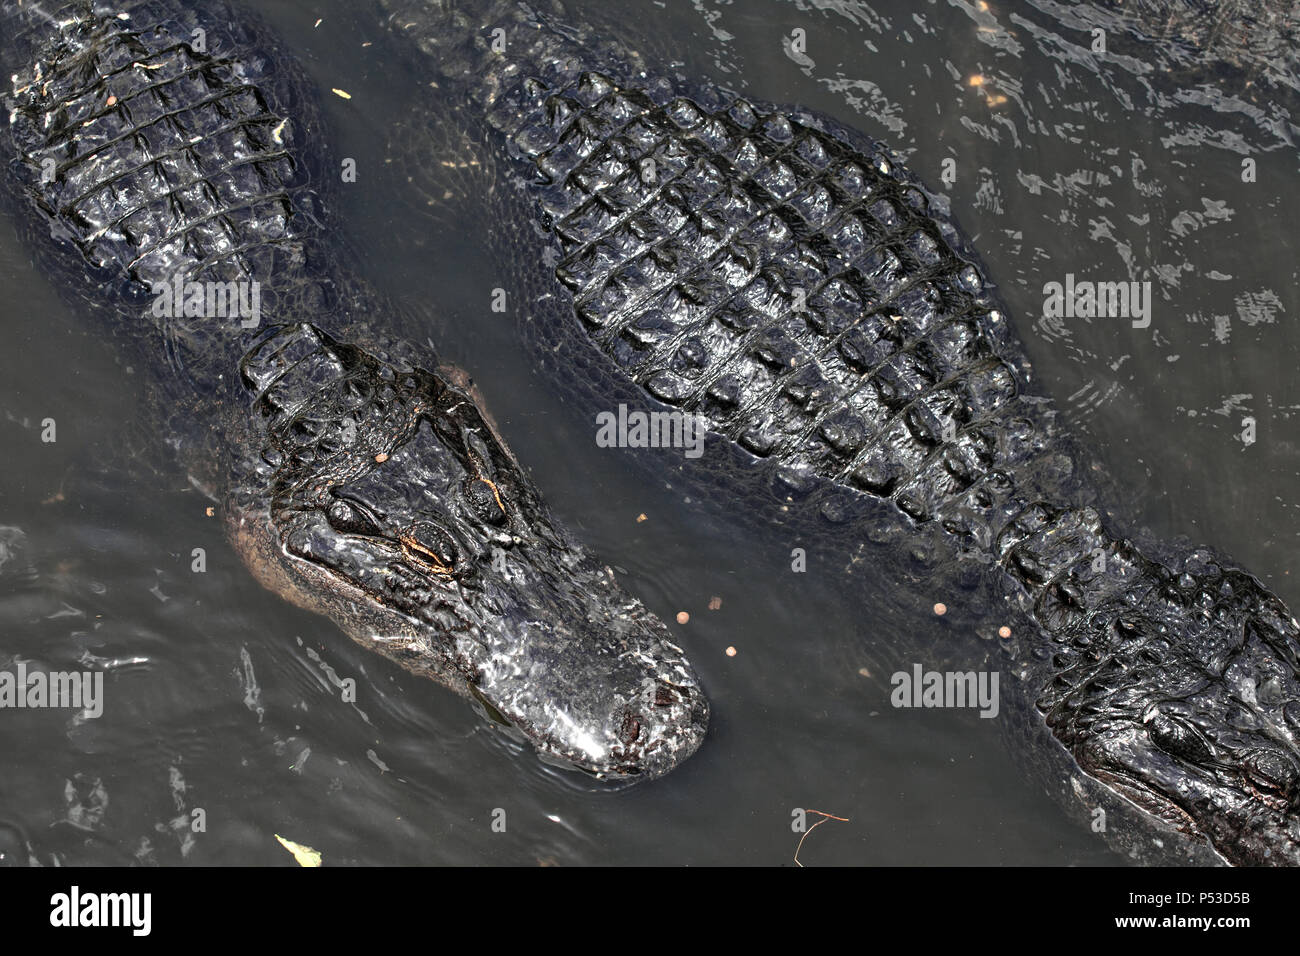 Close up shot of alligators floating on water - Stock Image